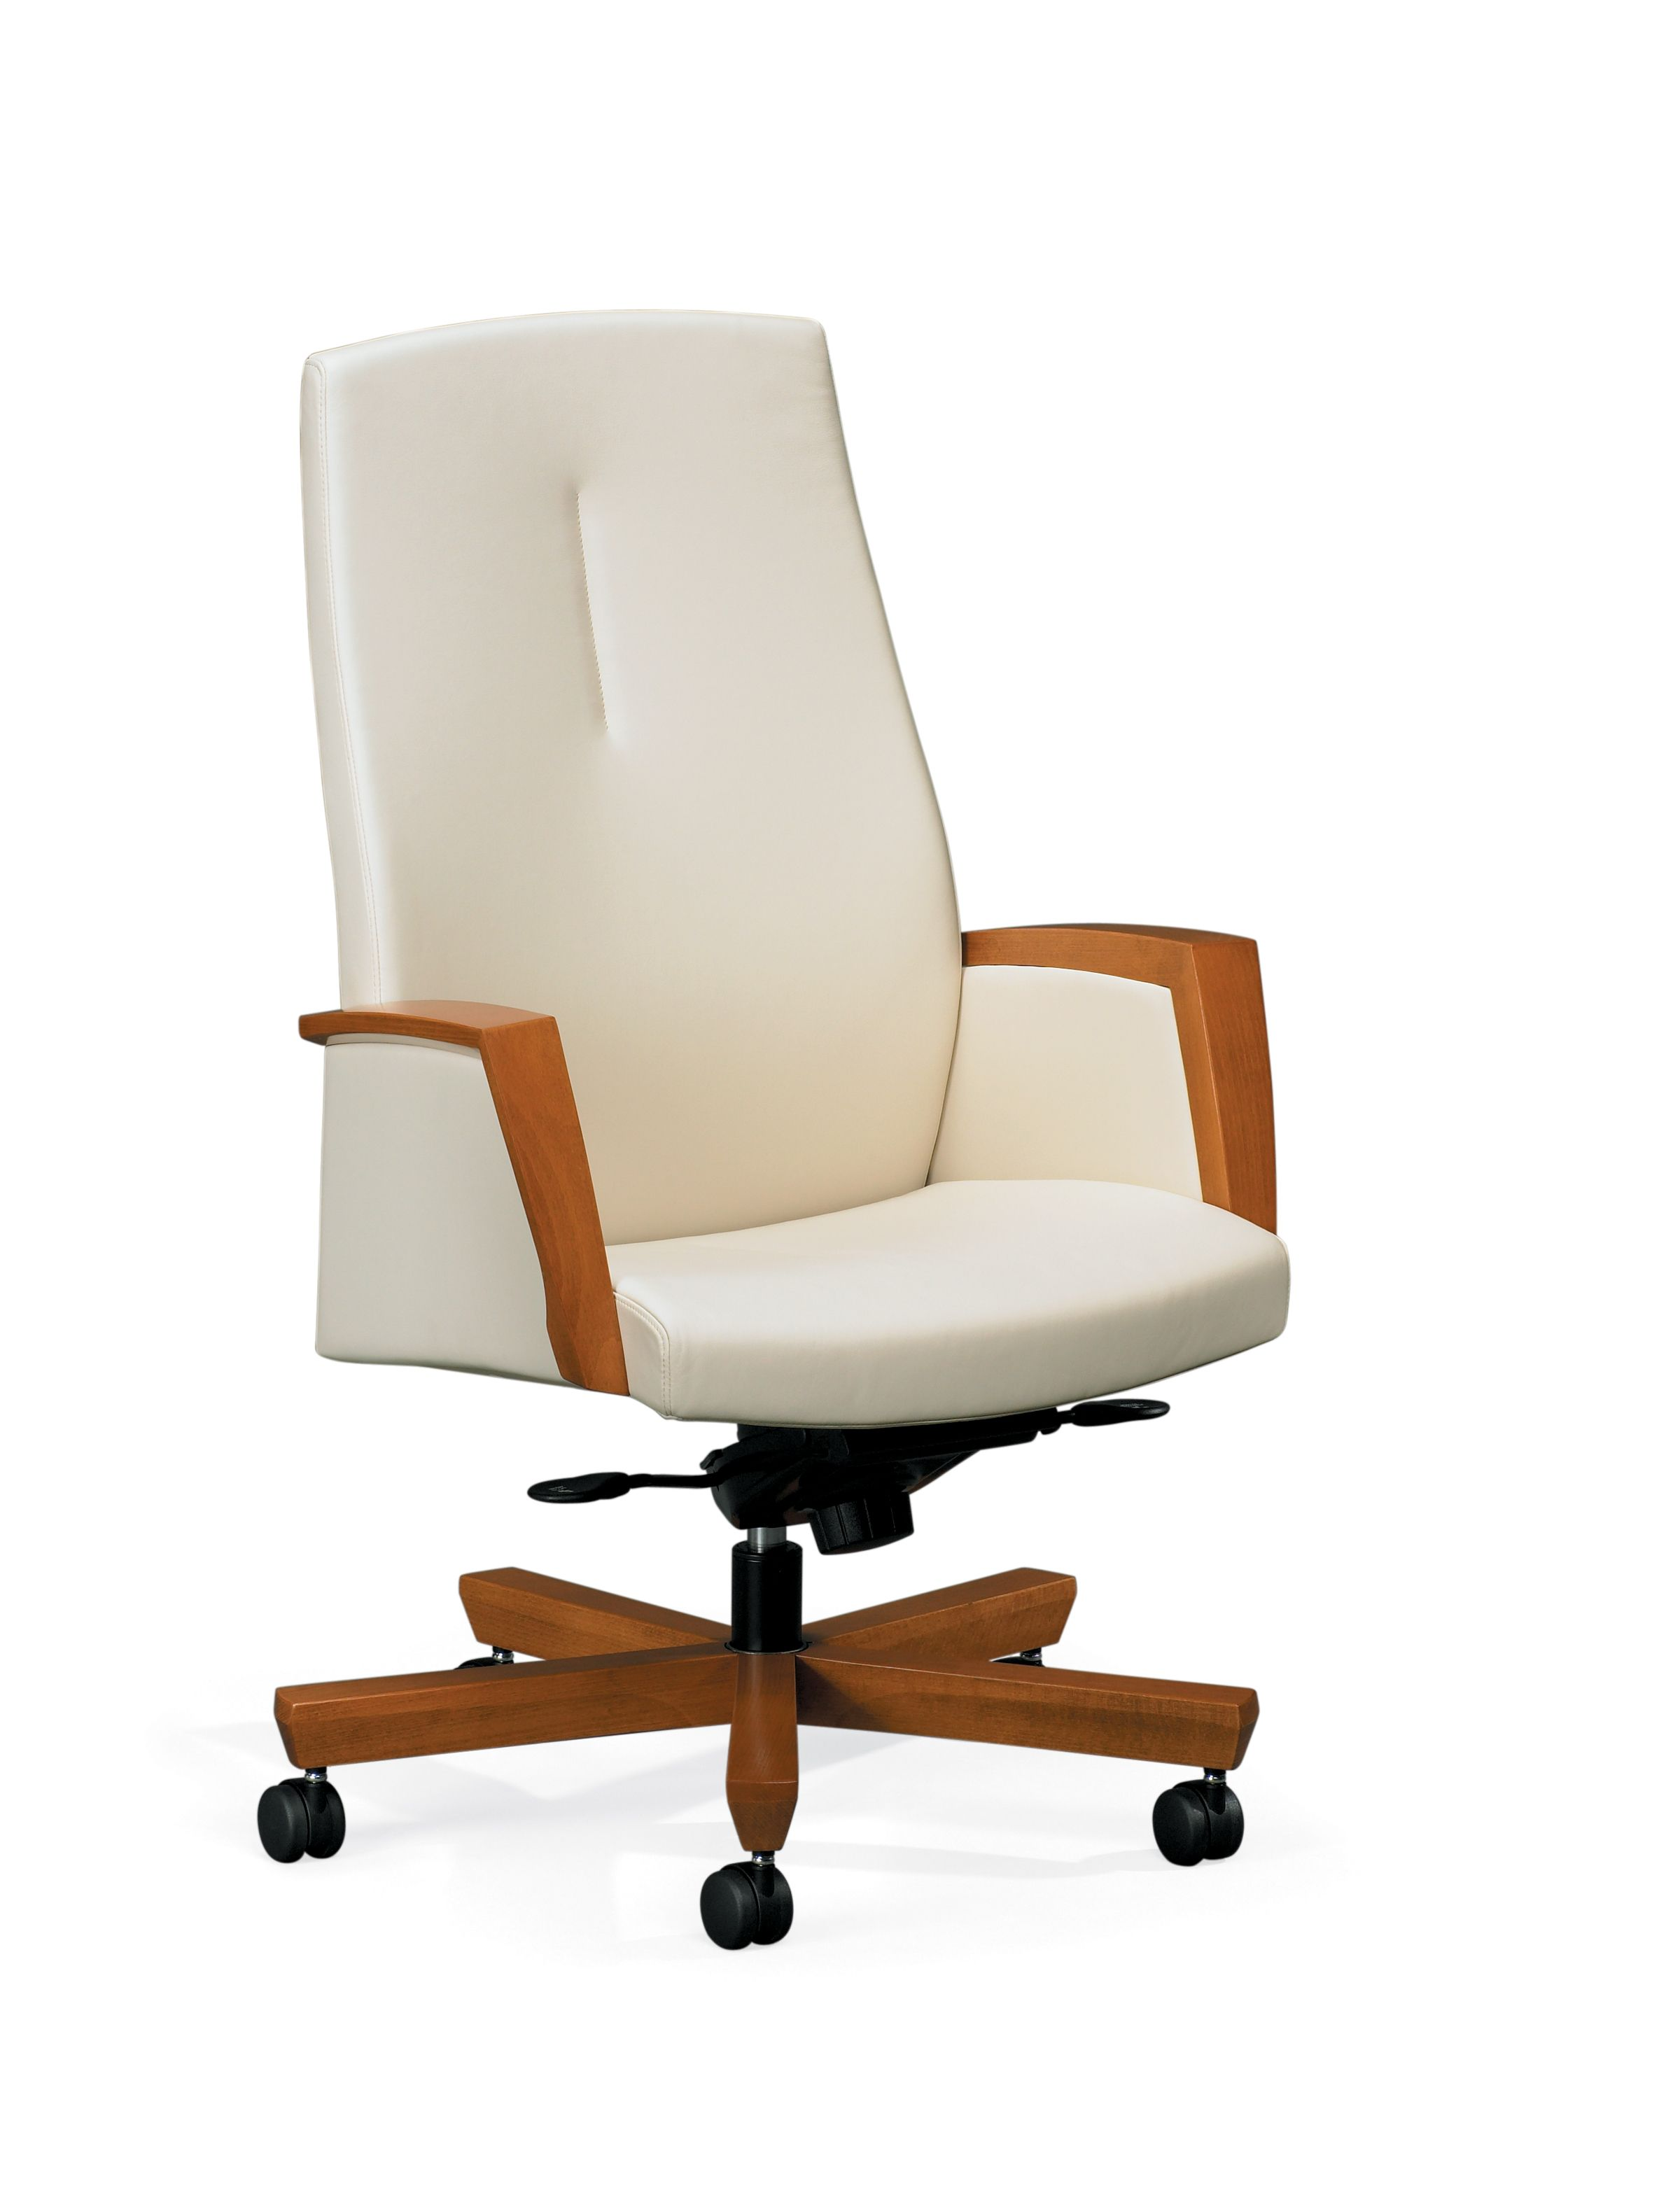 office chair controls. Furniture : Office Workspace Admirable Chair Control Design Inspiration With Comfortable White Leather Beight Controls